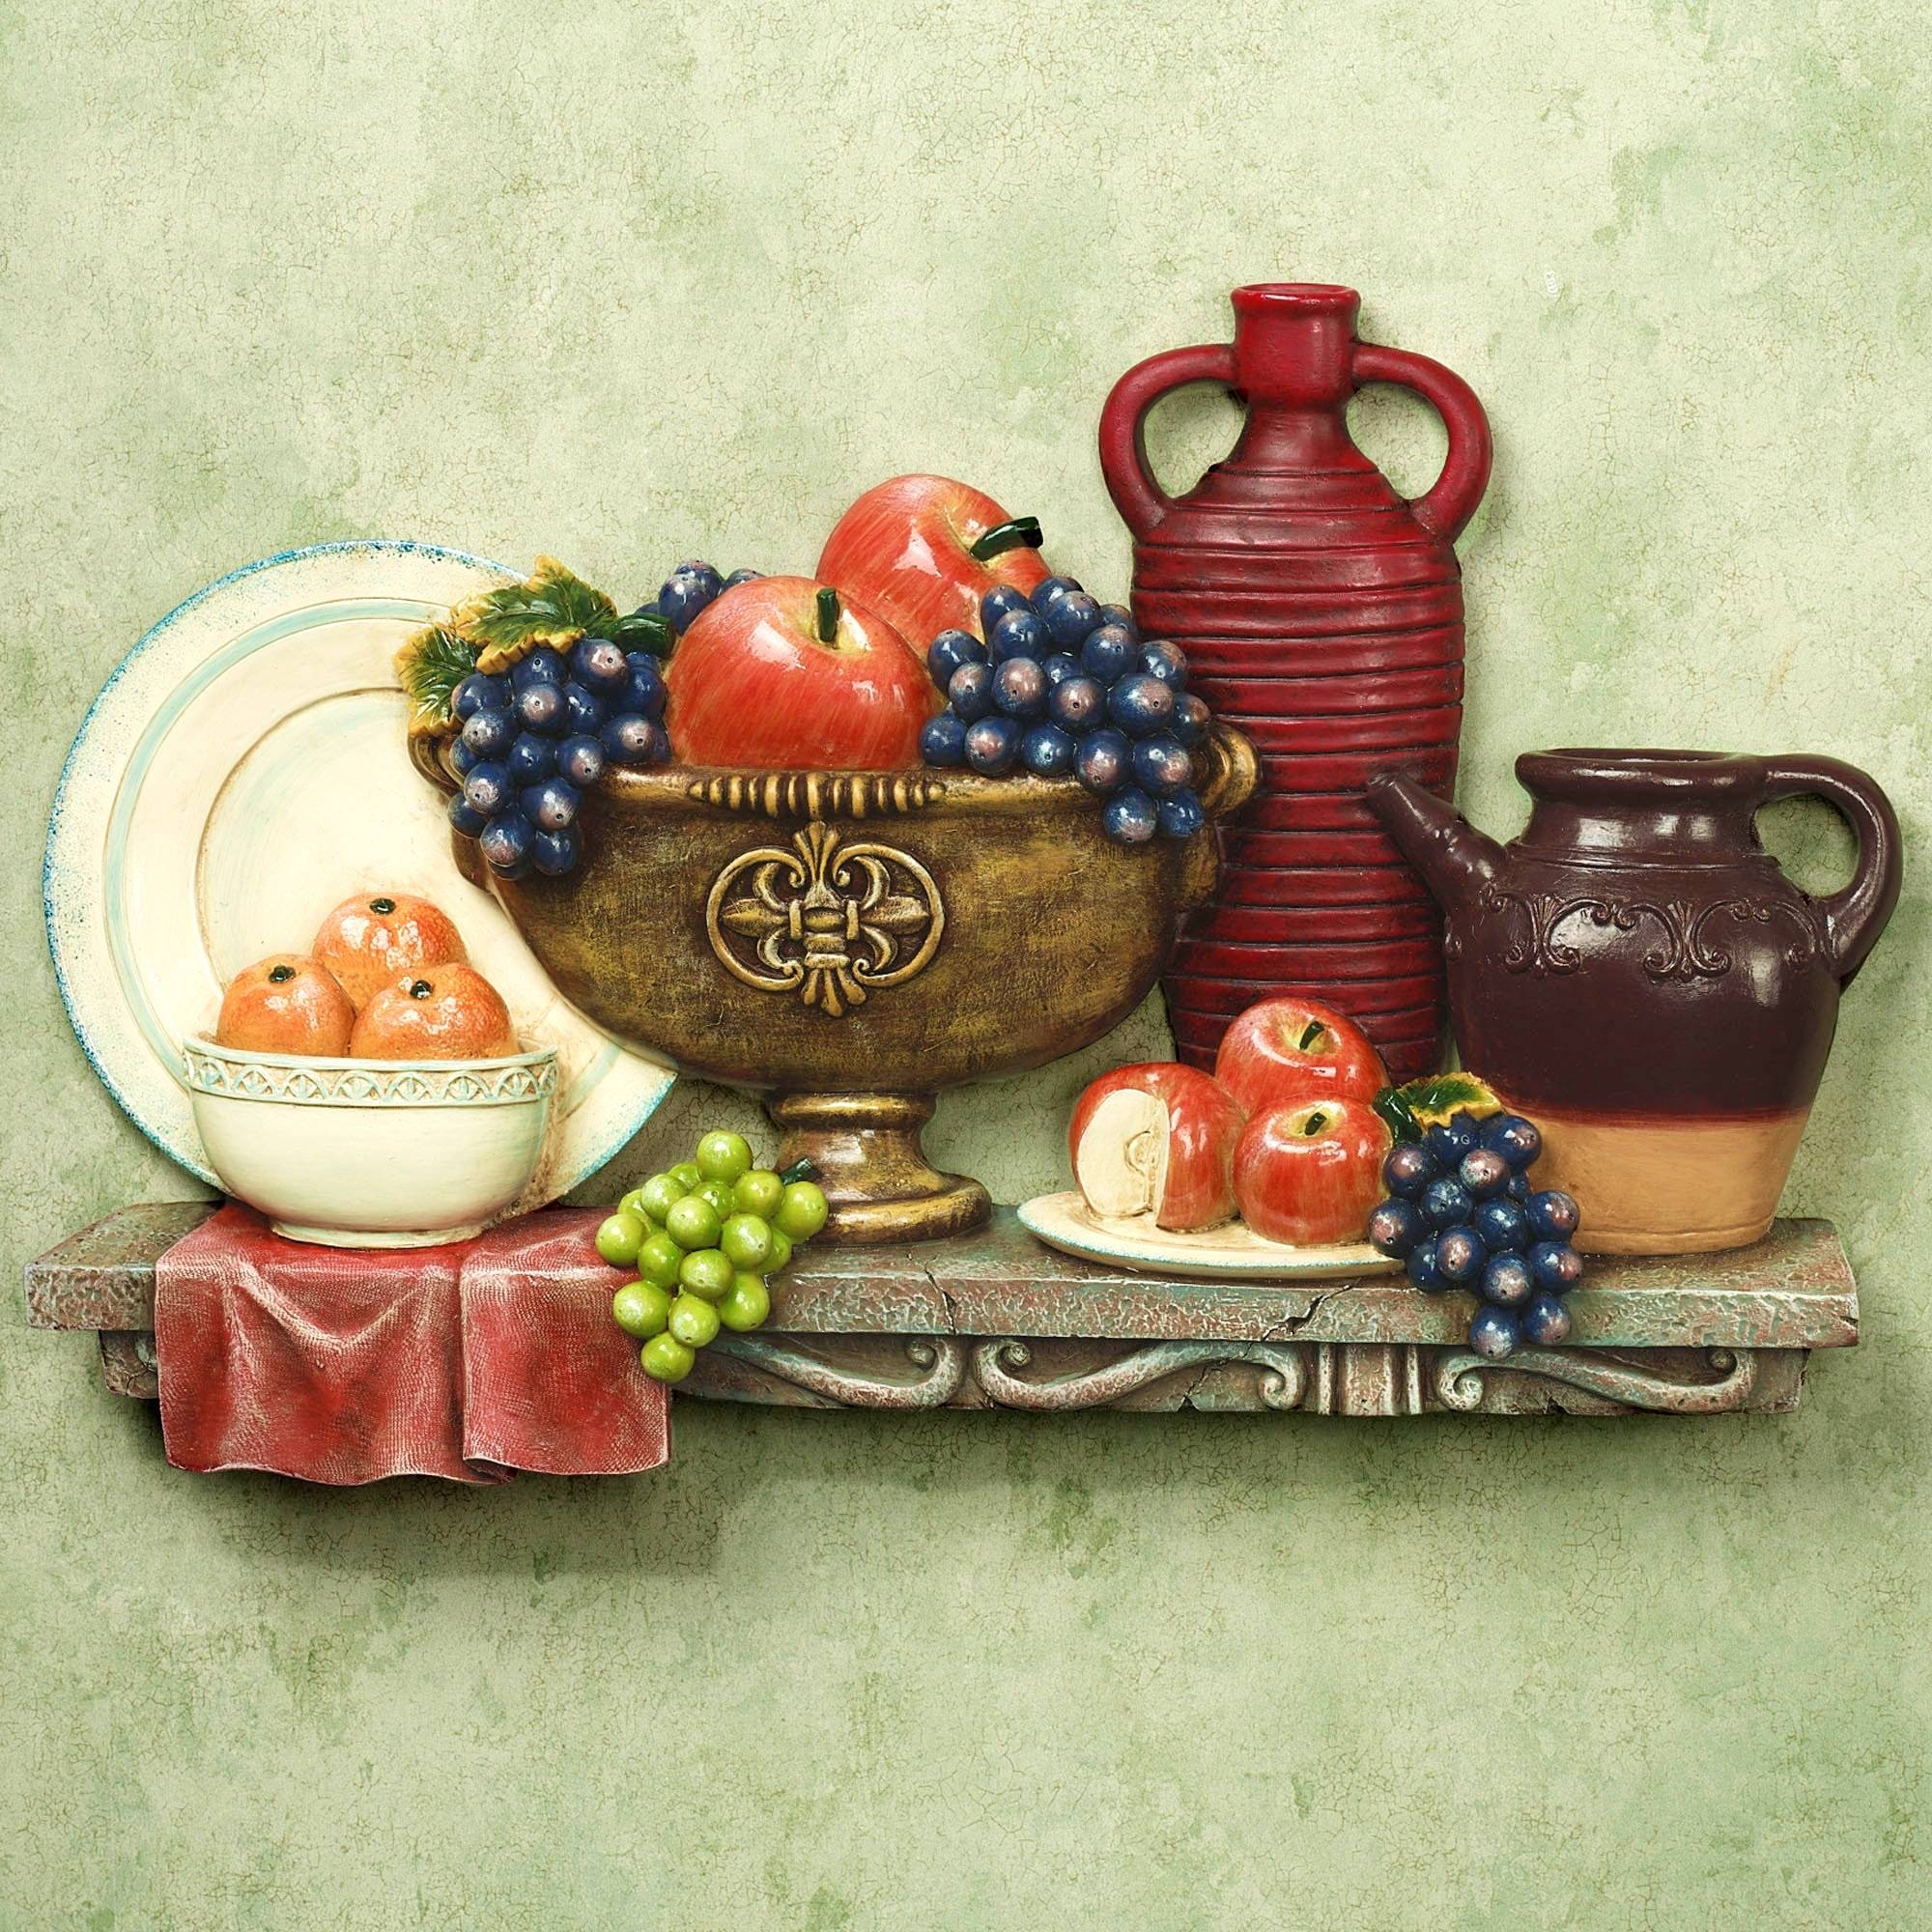 Furniture : Fascinating Fat Italian Chef Kitchen Wall Decor For Best And Newest Cucina Wall Art (View 28 of 30)